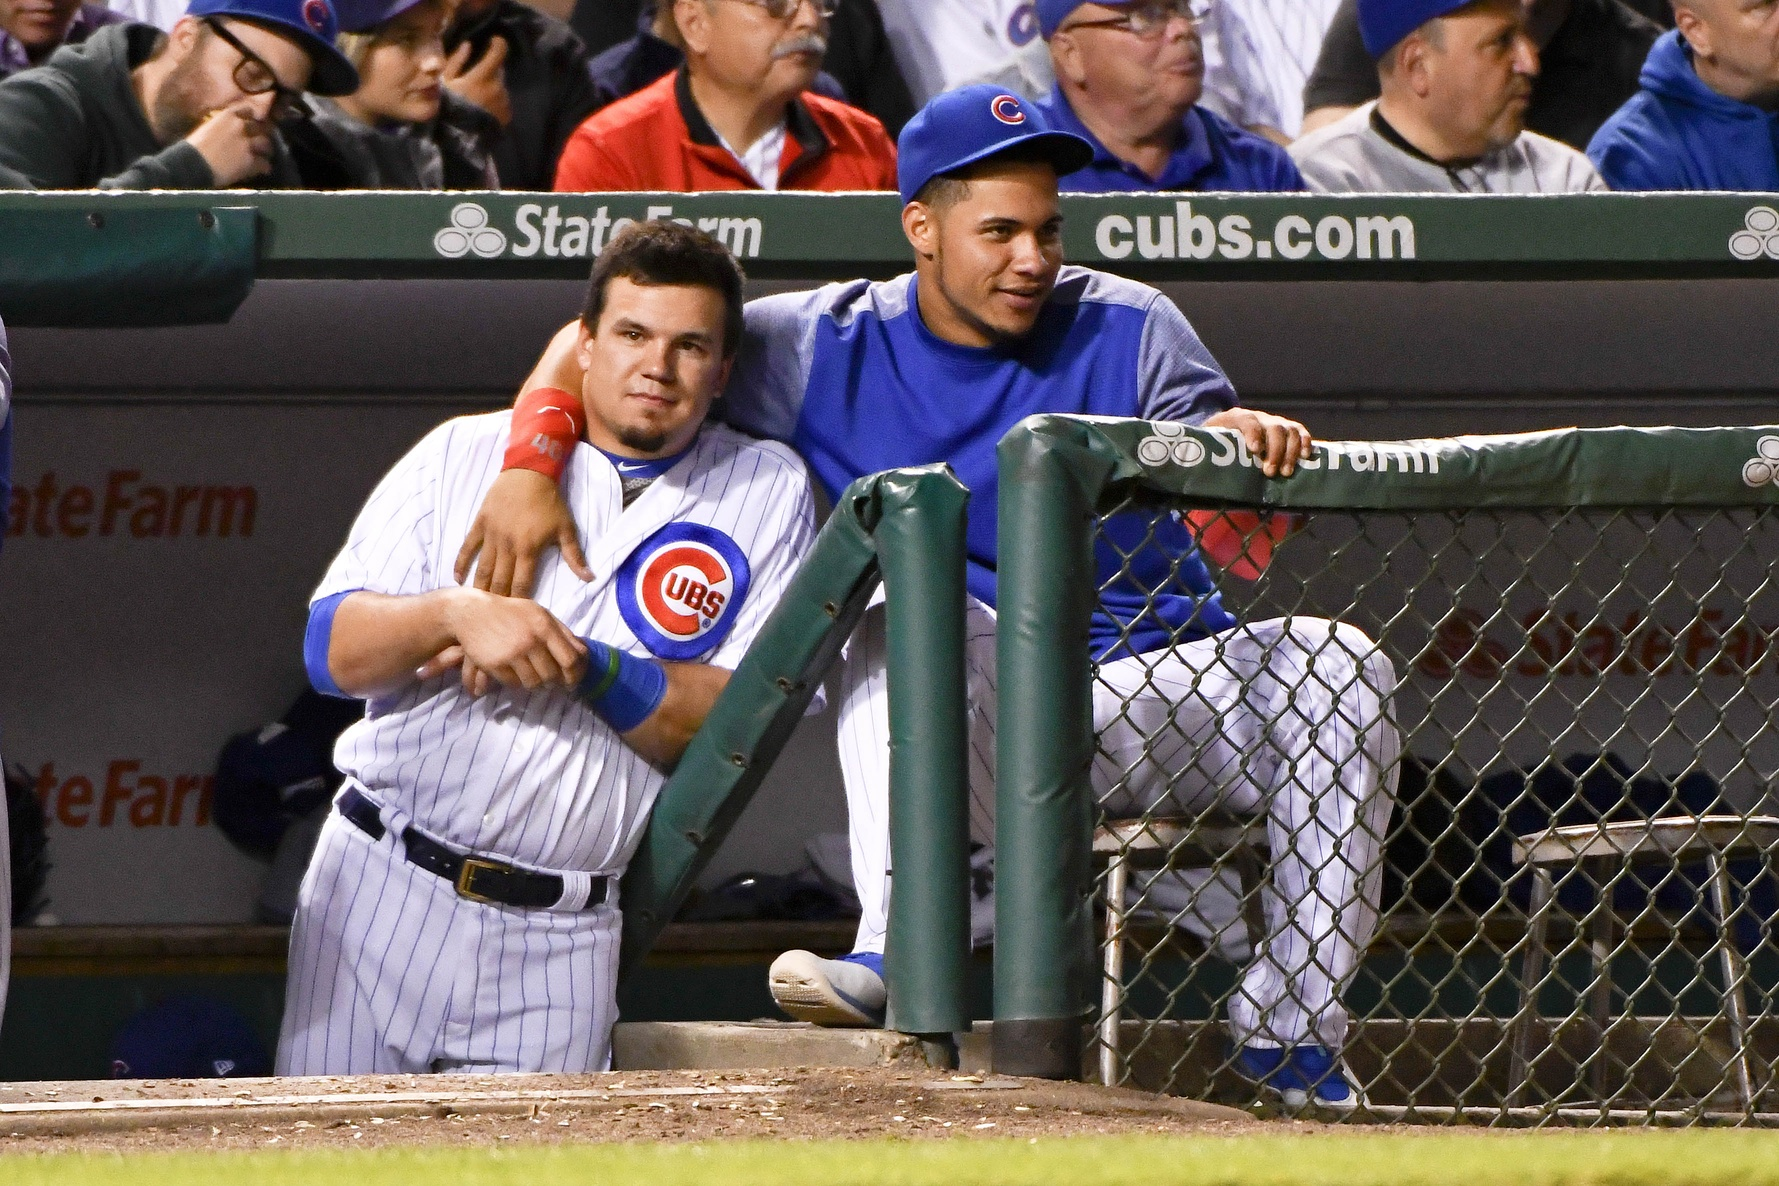 Cubs plan to send OF Schwarber to Triple-A Iowa